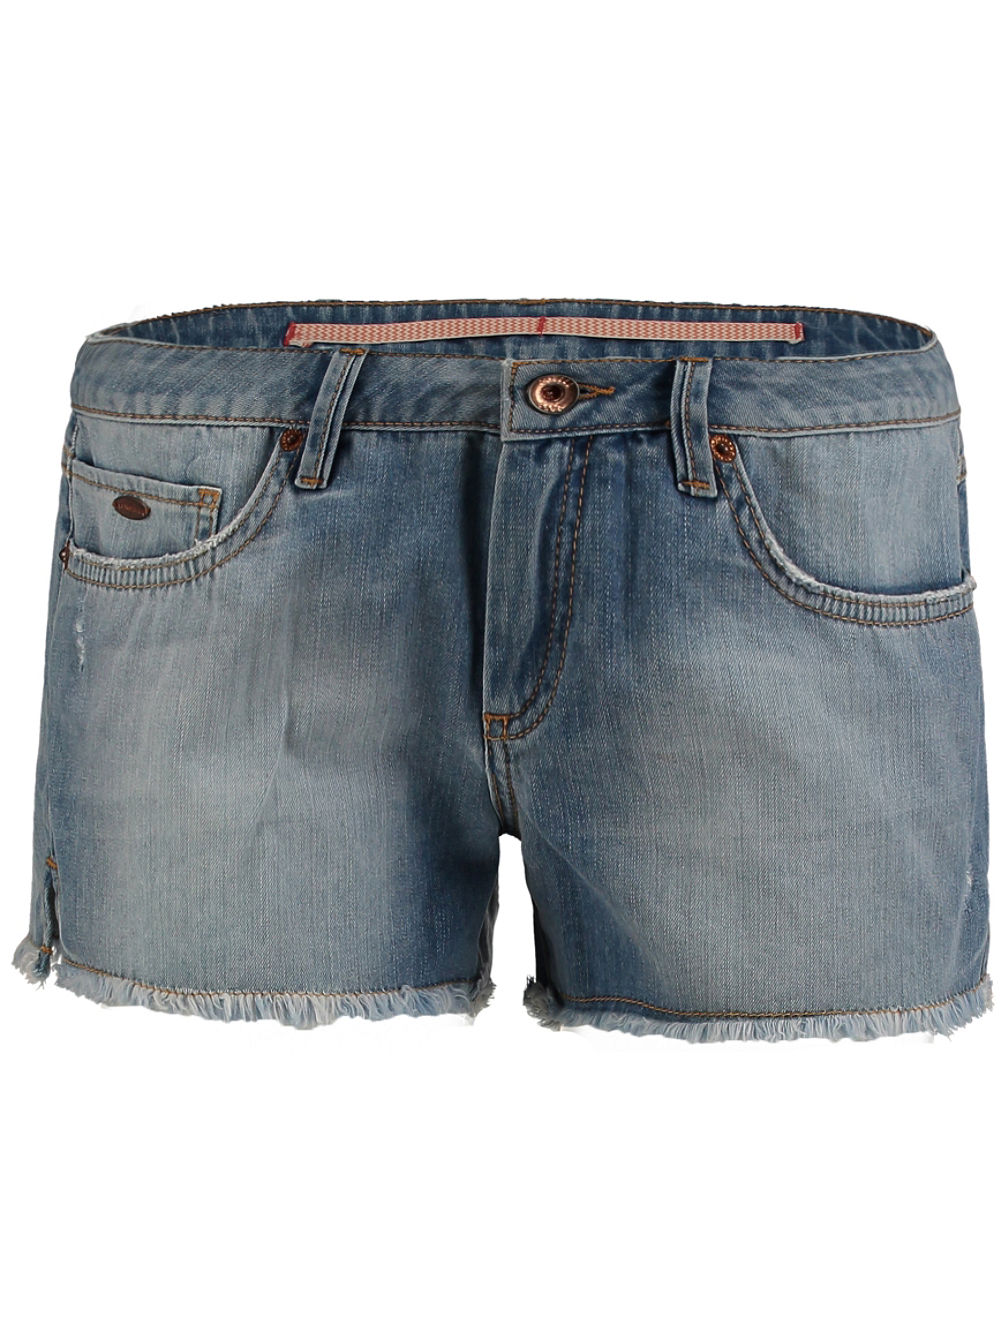 Island Denim Shorts